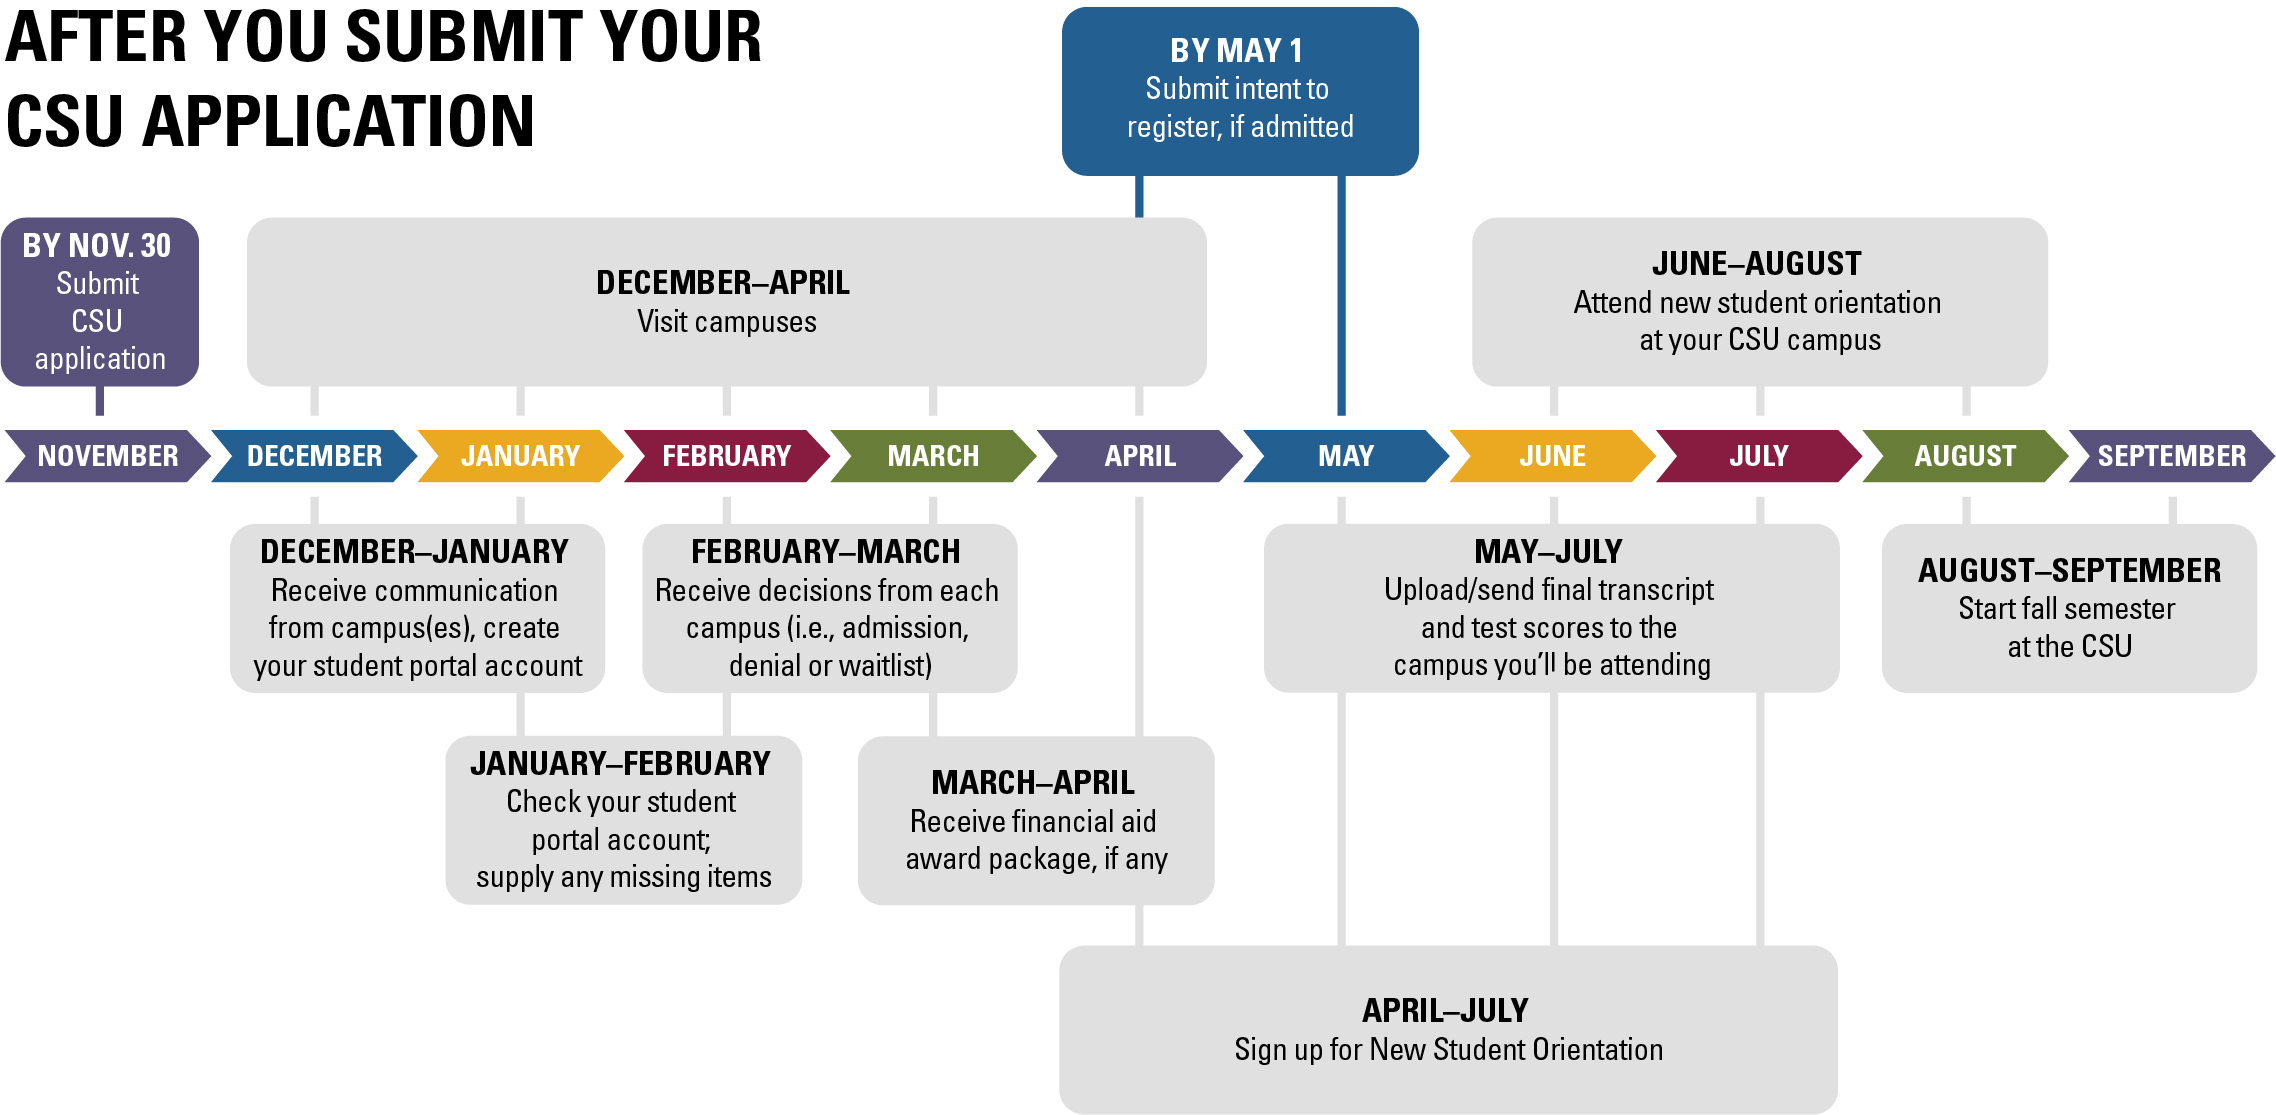 A timeline of the CSU admissions process.